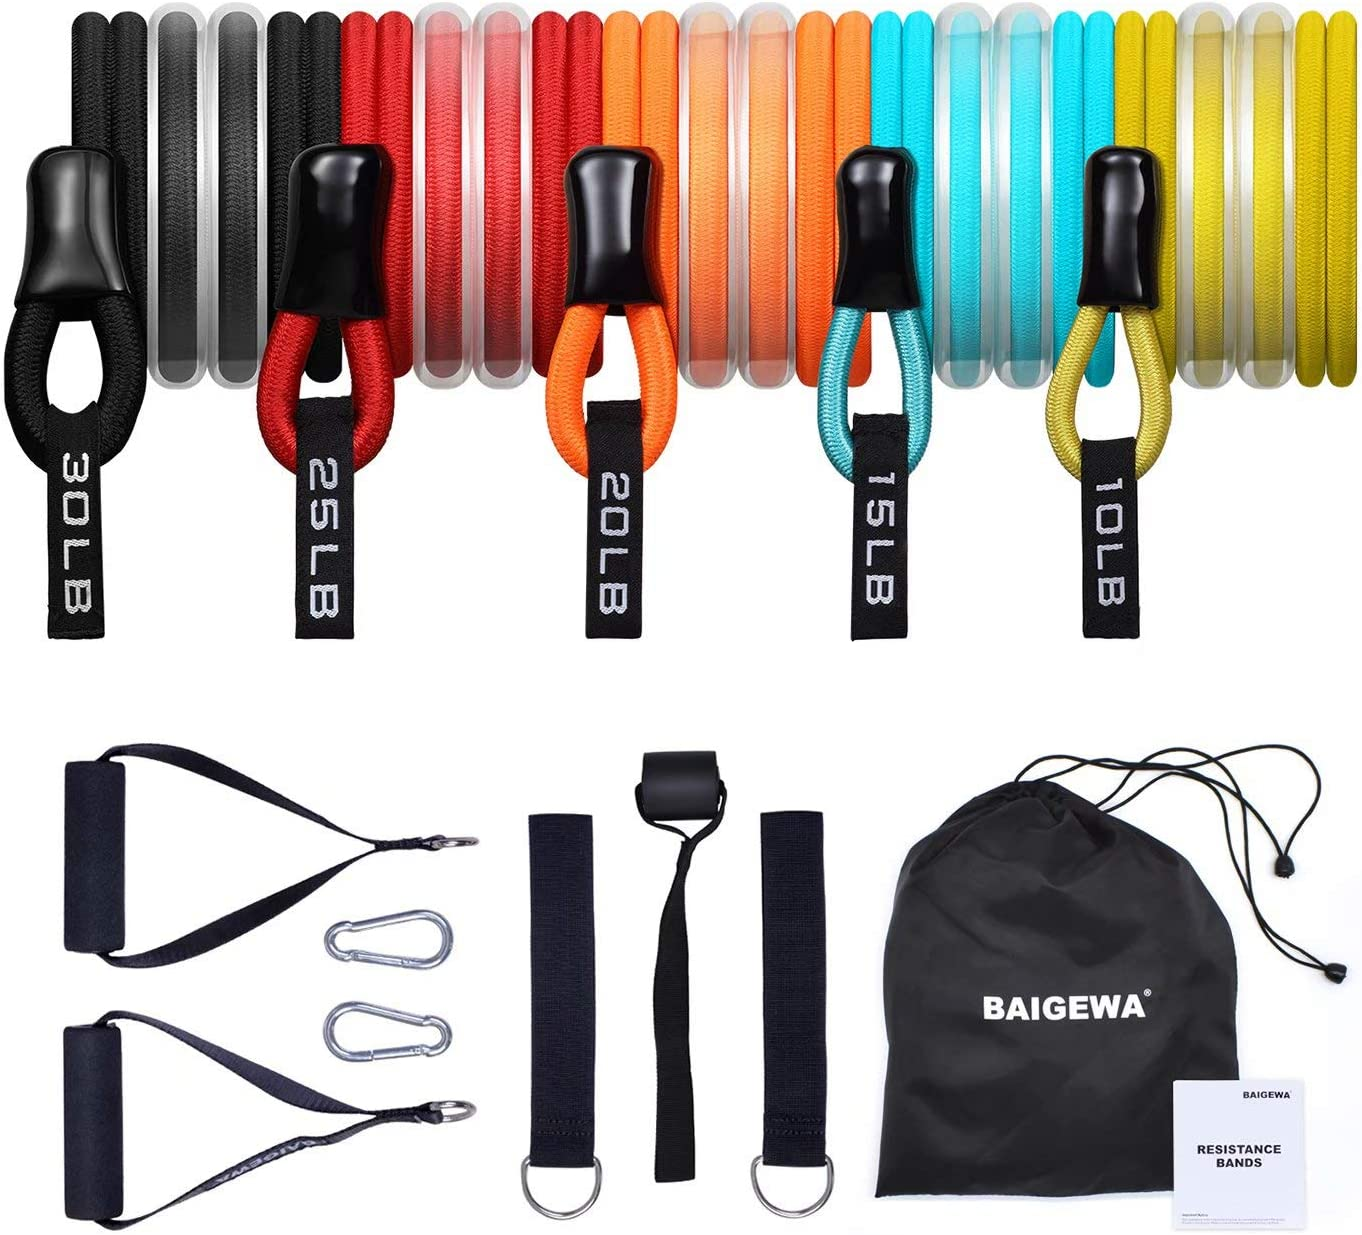 13Pcs Safe and Unbreakable Resistance Bands Set Latext Exercise Equipment Home Rehabilitation Training Bands Exercise Bands Gift Resistance Bands for Seniors